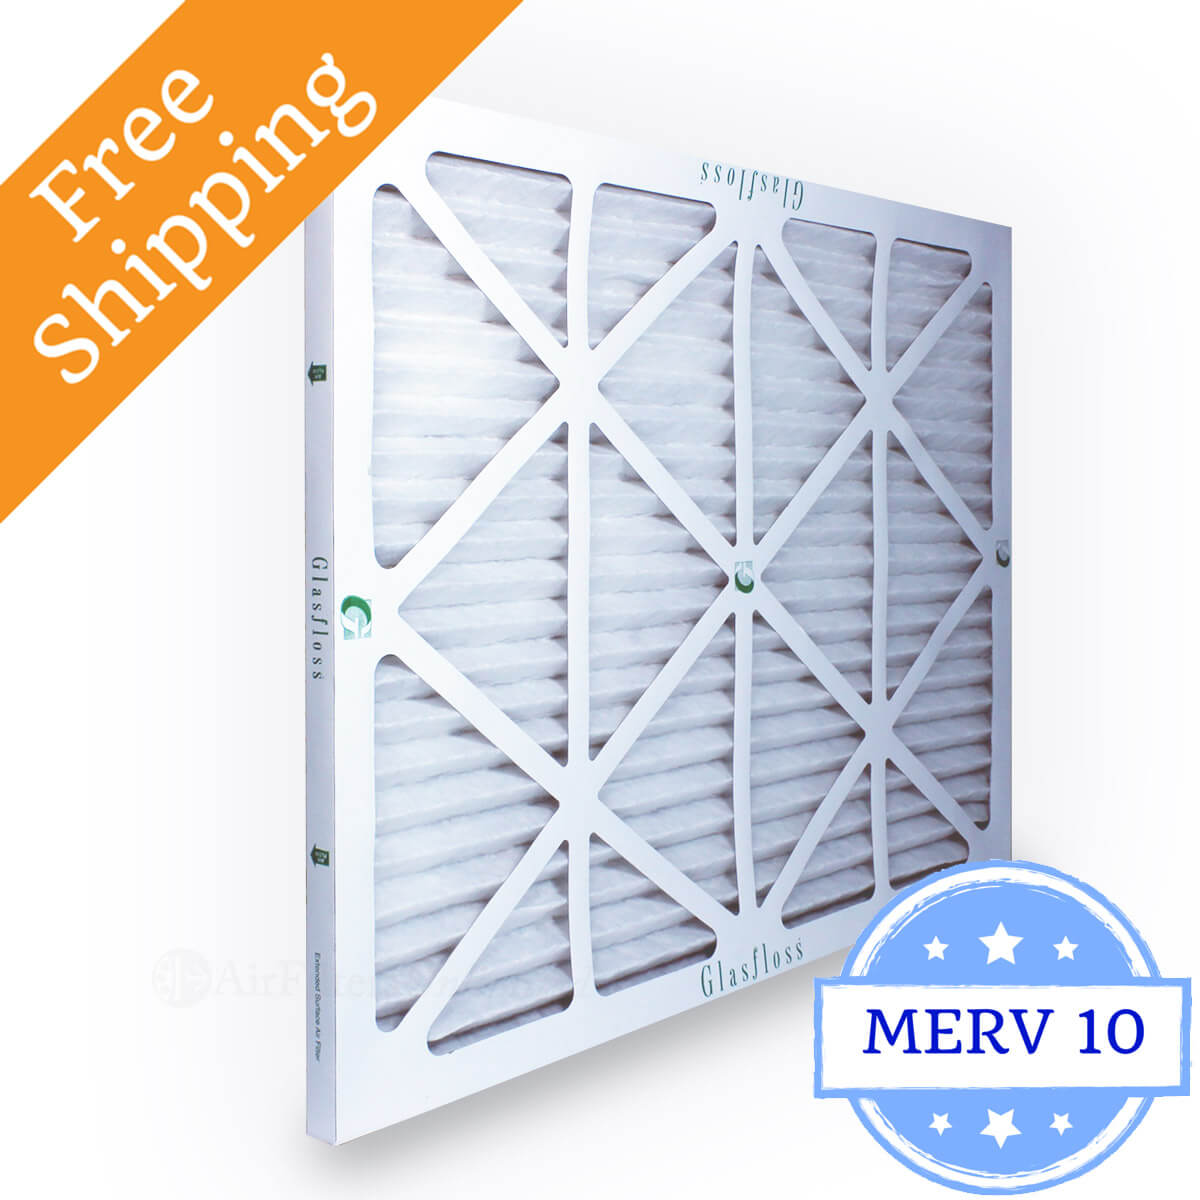 Glasfloss 12x24x1 Air Filter ZL Series